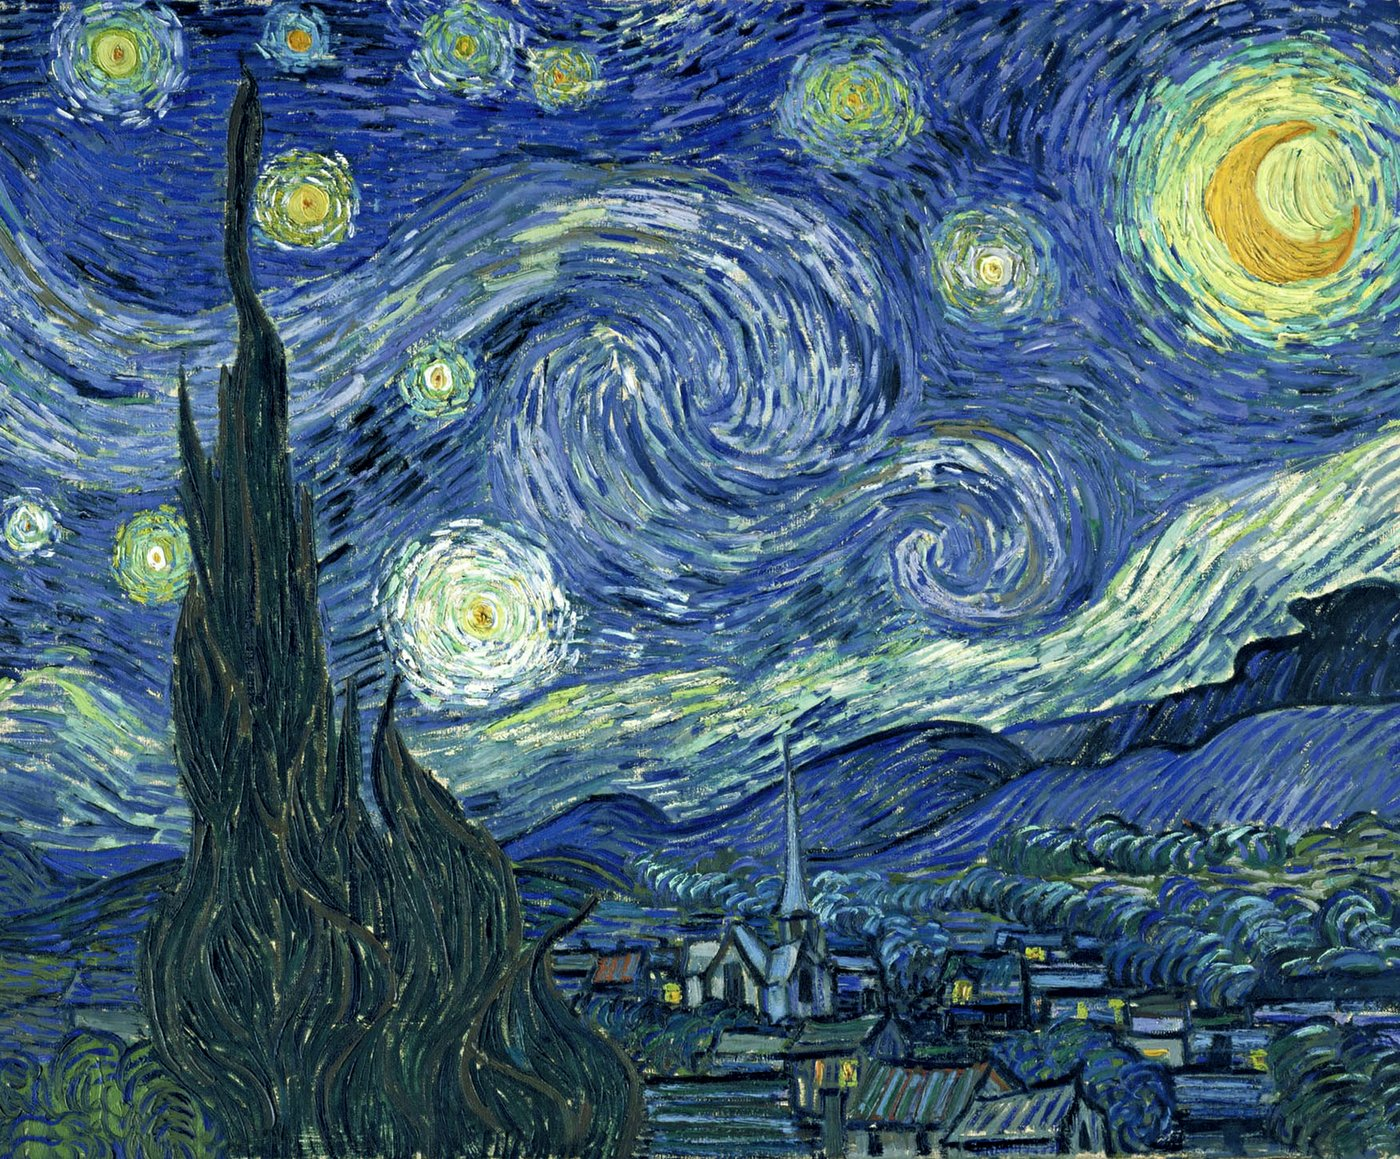 Vincent Van Gogh background